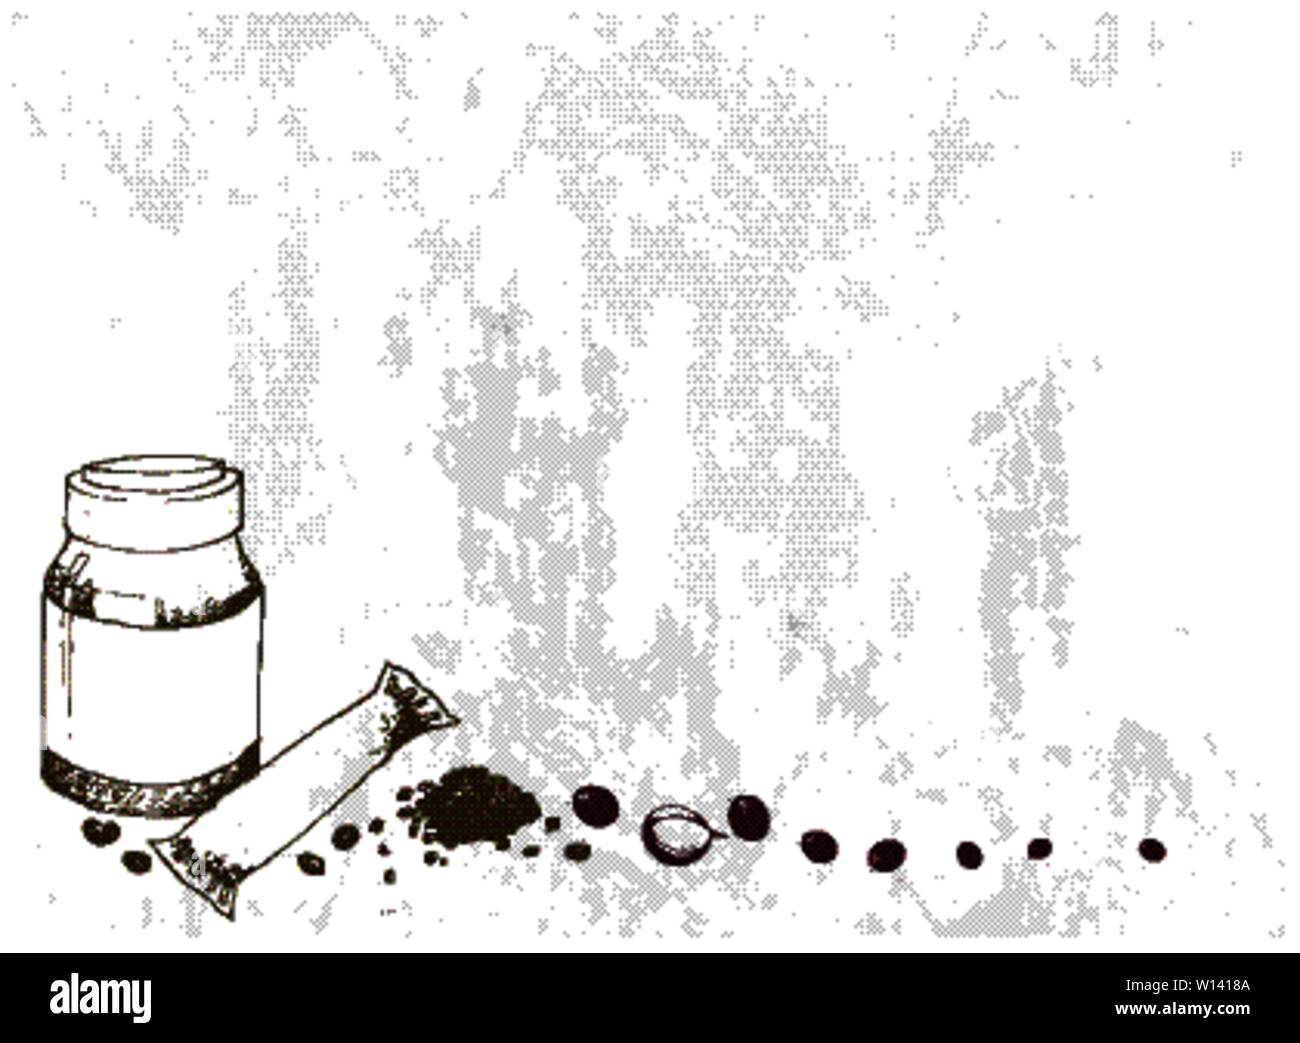 Illustration Hand Drawn Sketch of Instant Coffee or Coffee Powder with Coffee Beans. Stock Vector